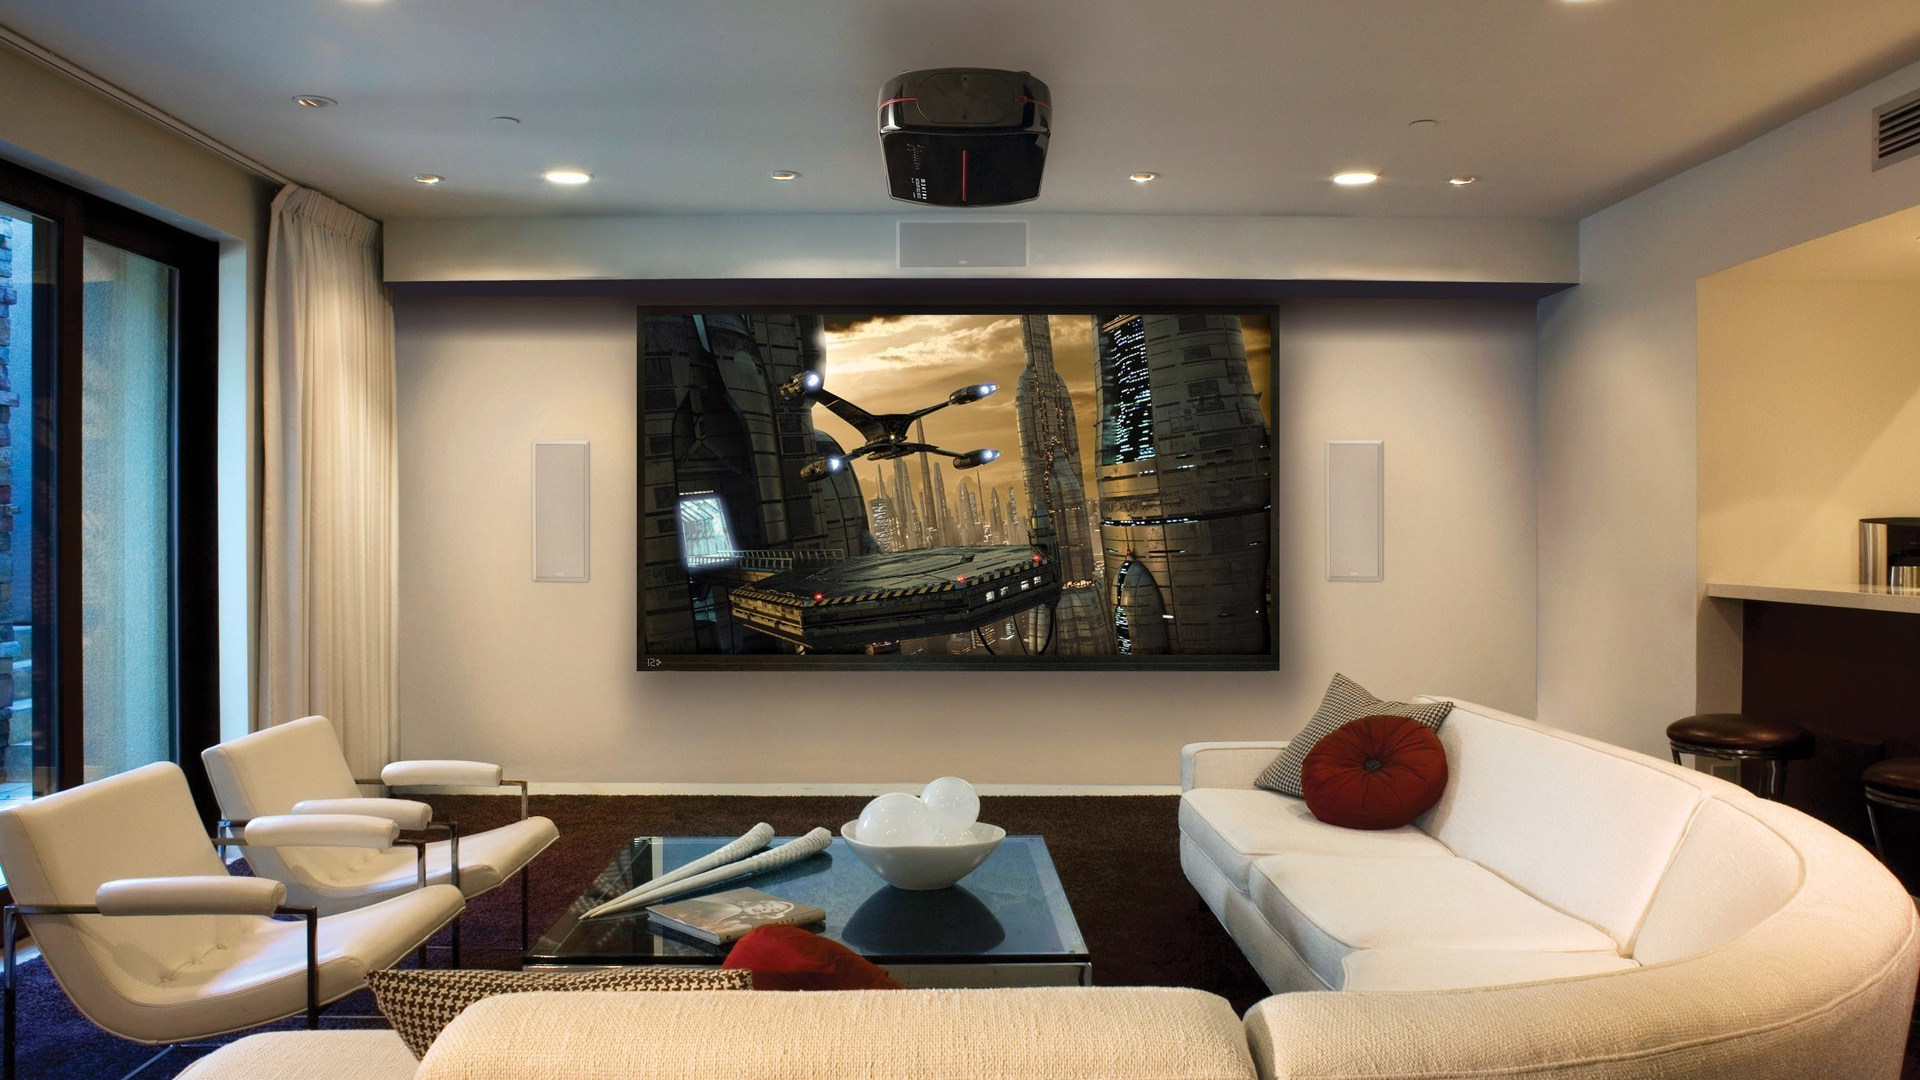 Modern Home Theater Designs | Design Trends - Premium PSD ... on modern home bar design, modern home library design, modern computer room design, custom home theater design, modern home kitchen design, modern home media room, luxury home theater design, home theater systems design, modern tv room design, modern luxury homes design, home movie theater design, modern home gym design, modern home office design, modern house interior design living room, modern kitchen room design, modern living room decor, modern bar room design, modern living room interior design ideas, modern living room ceiling design, modern entertainment room design,